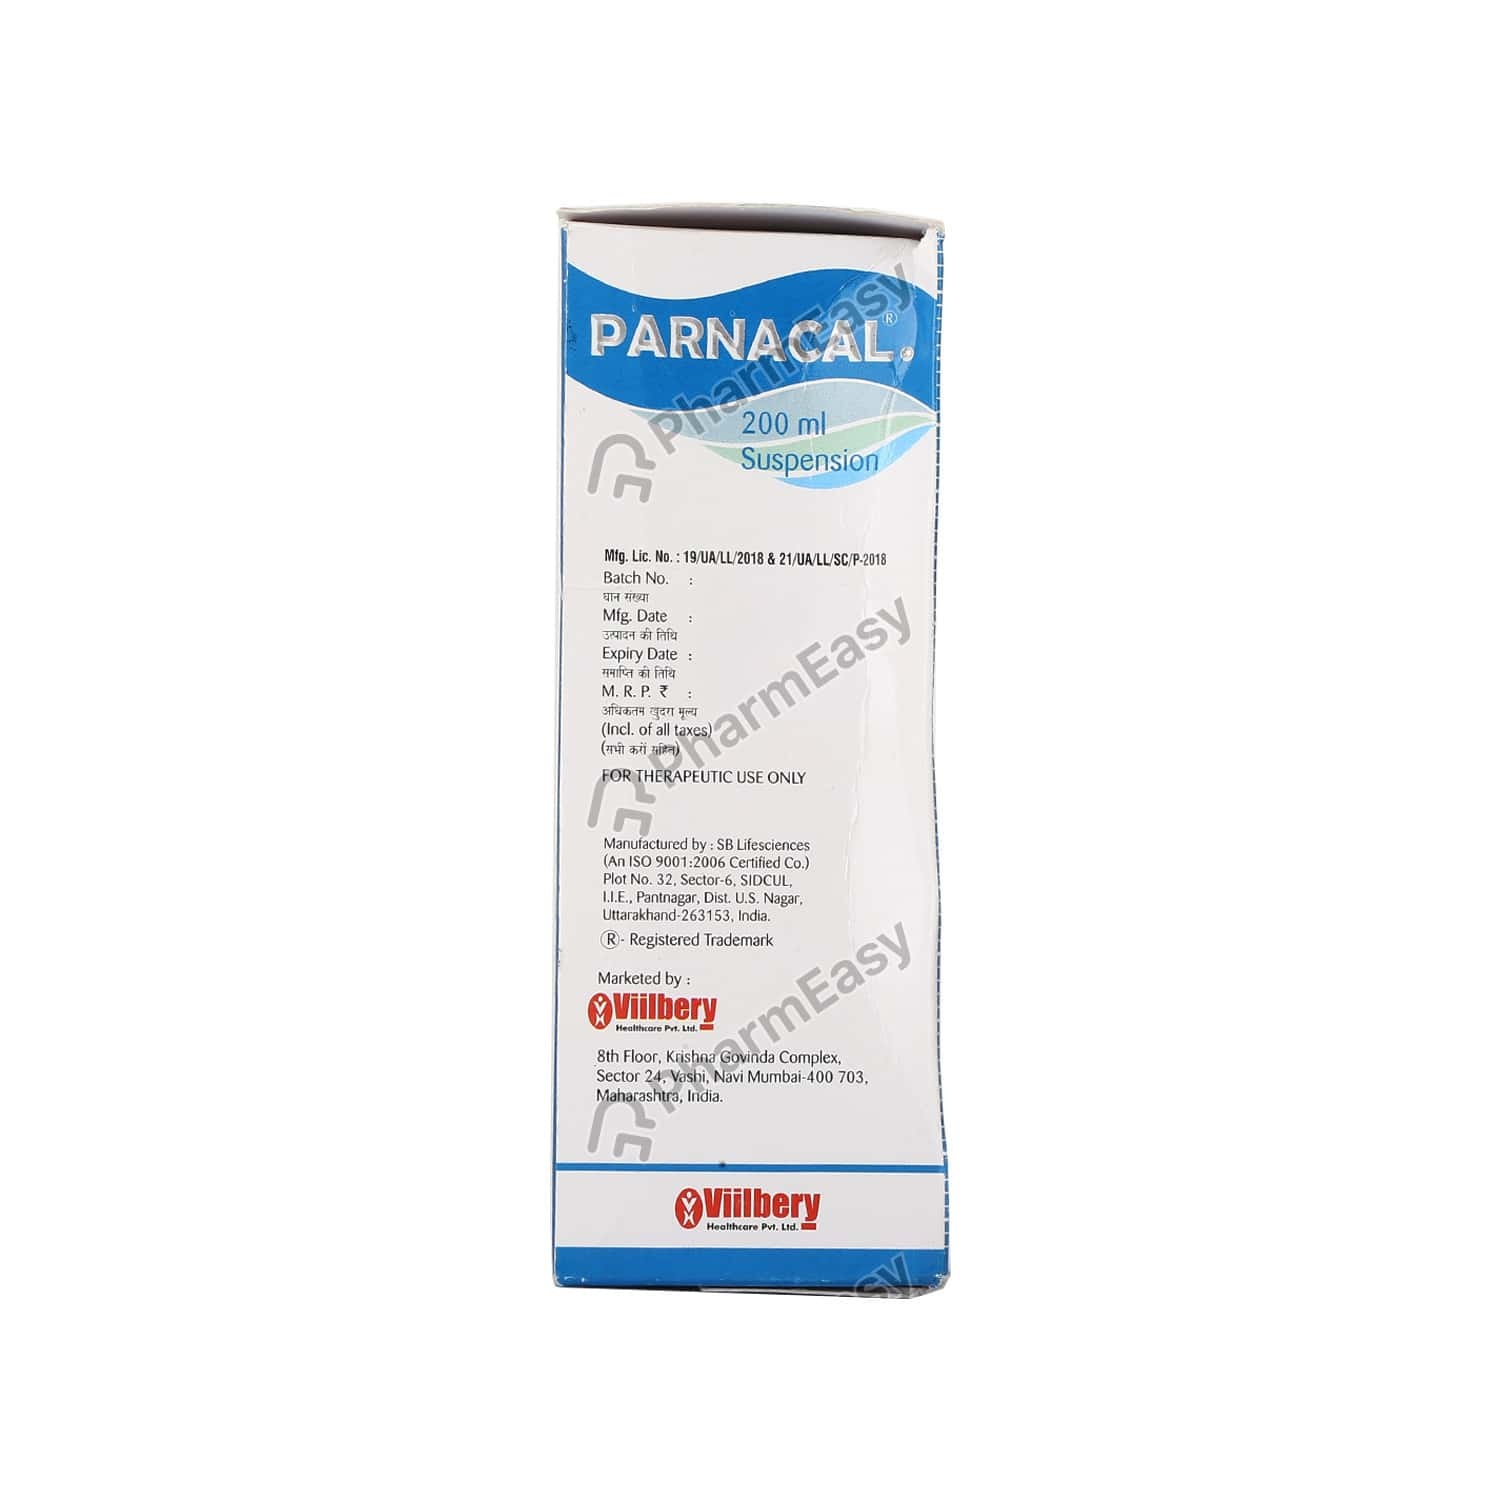 Parnacal Susp 200ml